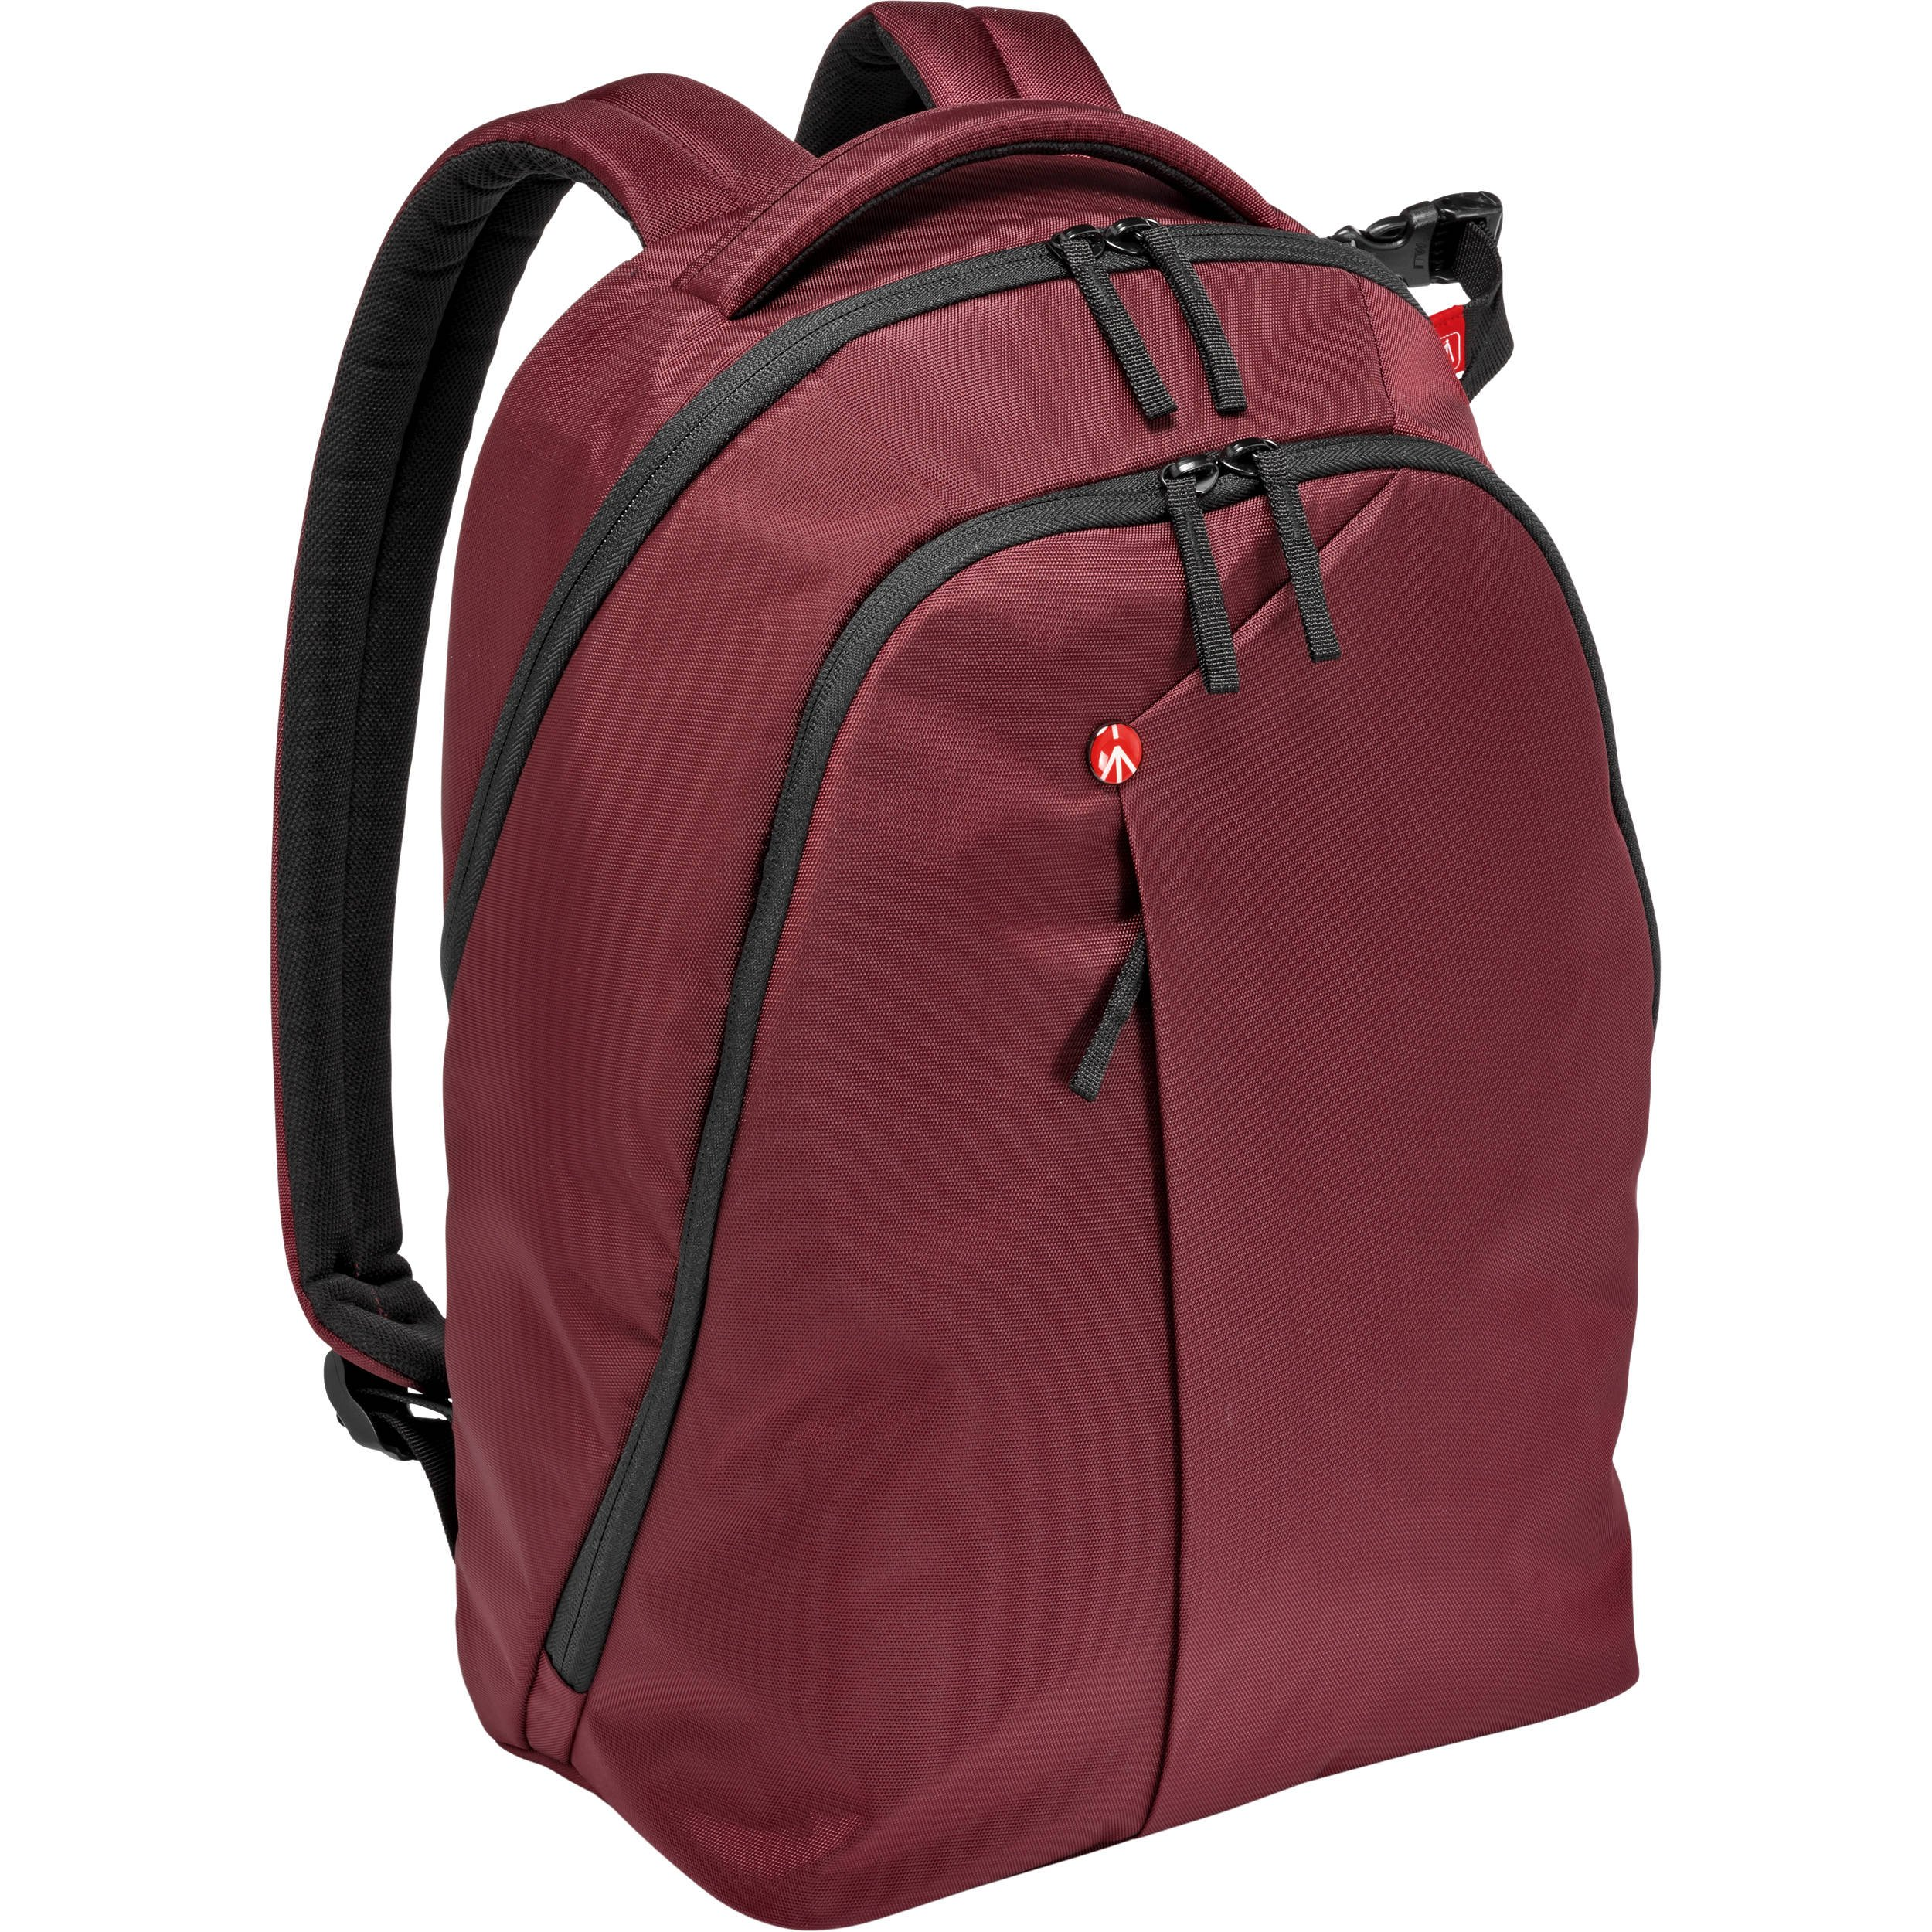 Manfrotto MB NX-BP-VBX Backpack for DSLR Camera, Laptop & Personal Gear (Bordeaux)